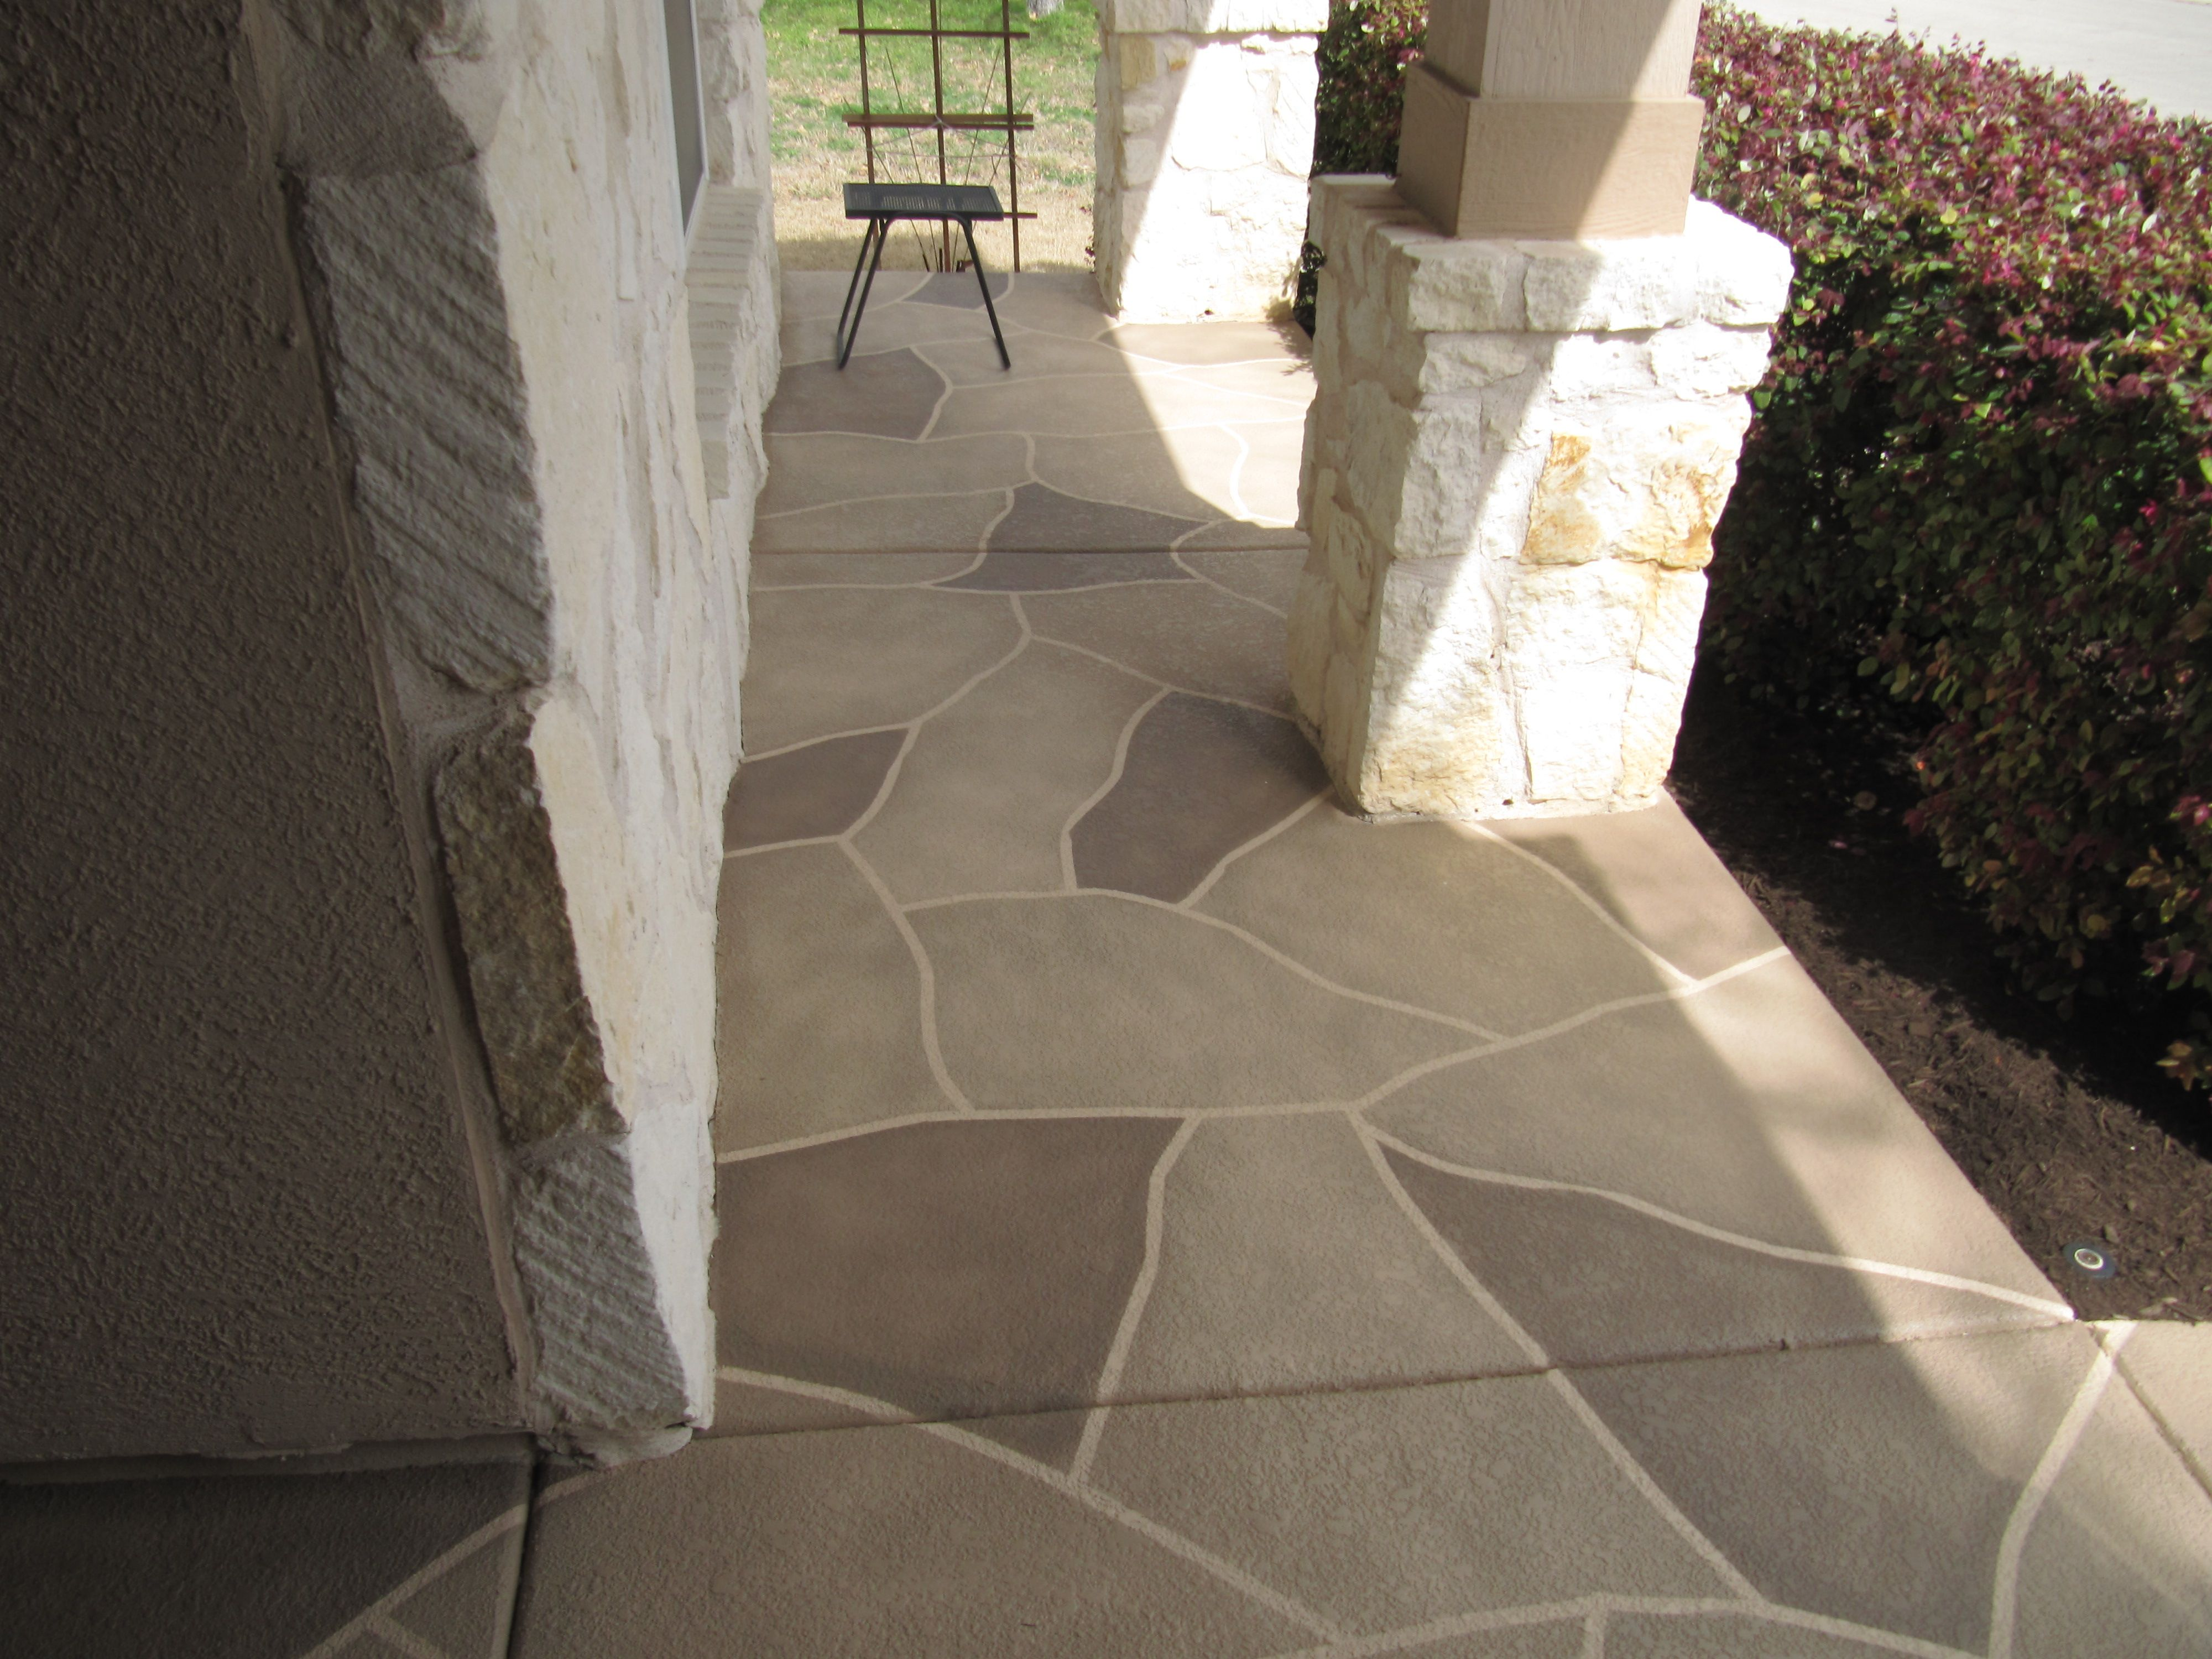 Painted Patio Stone Pattern lasts a lifetime and is